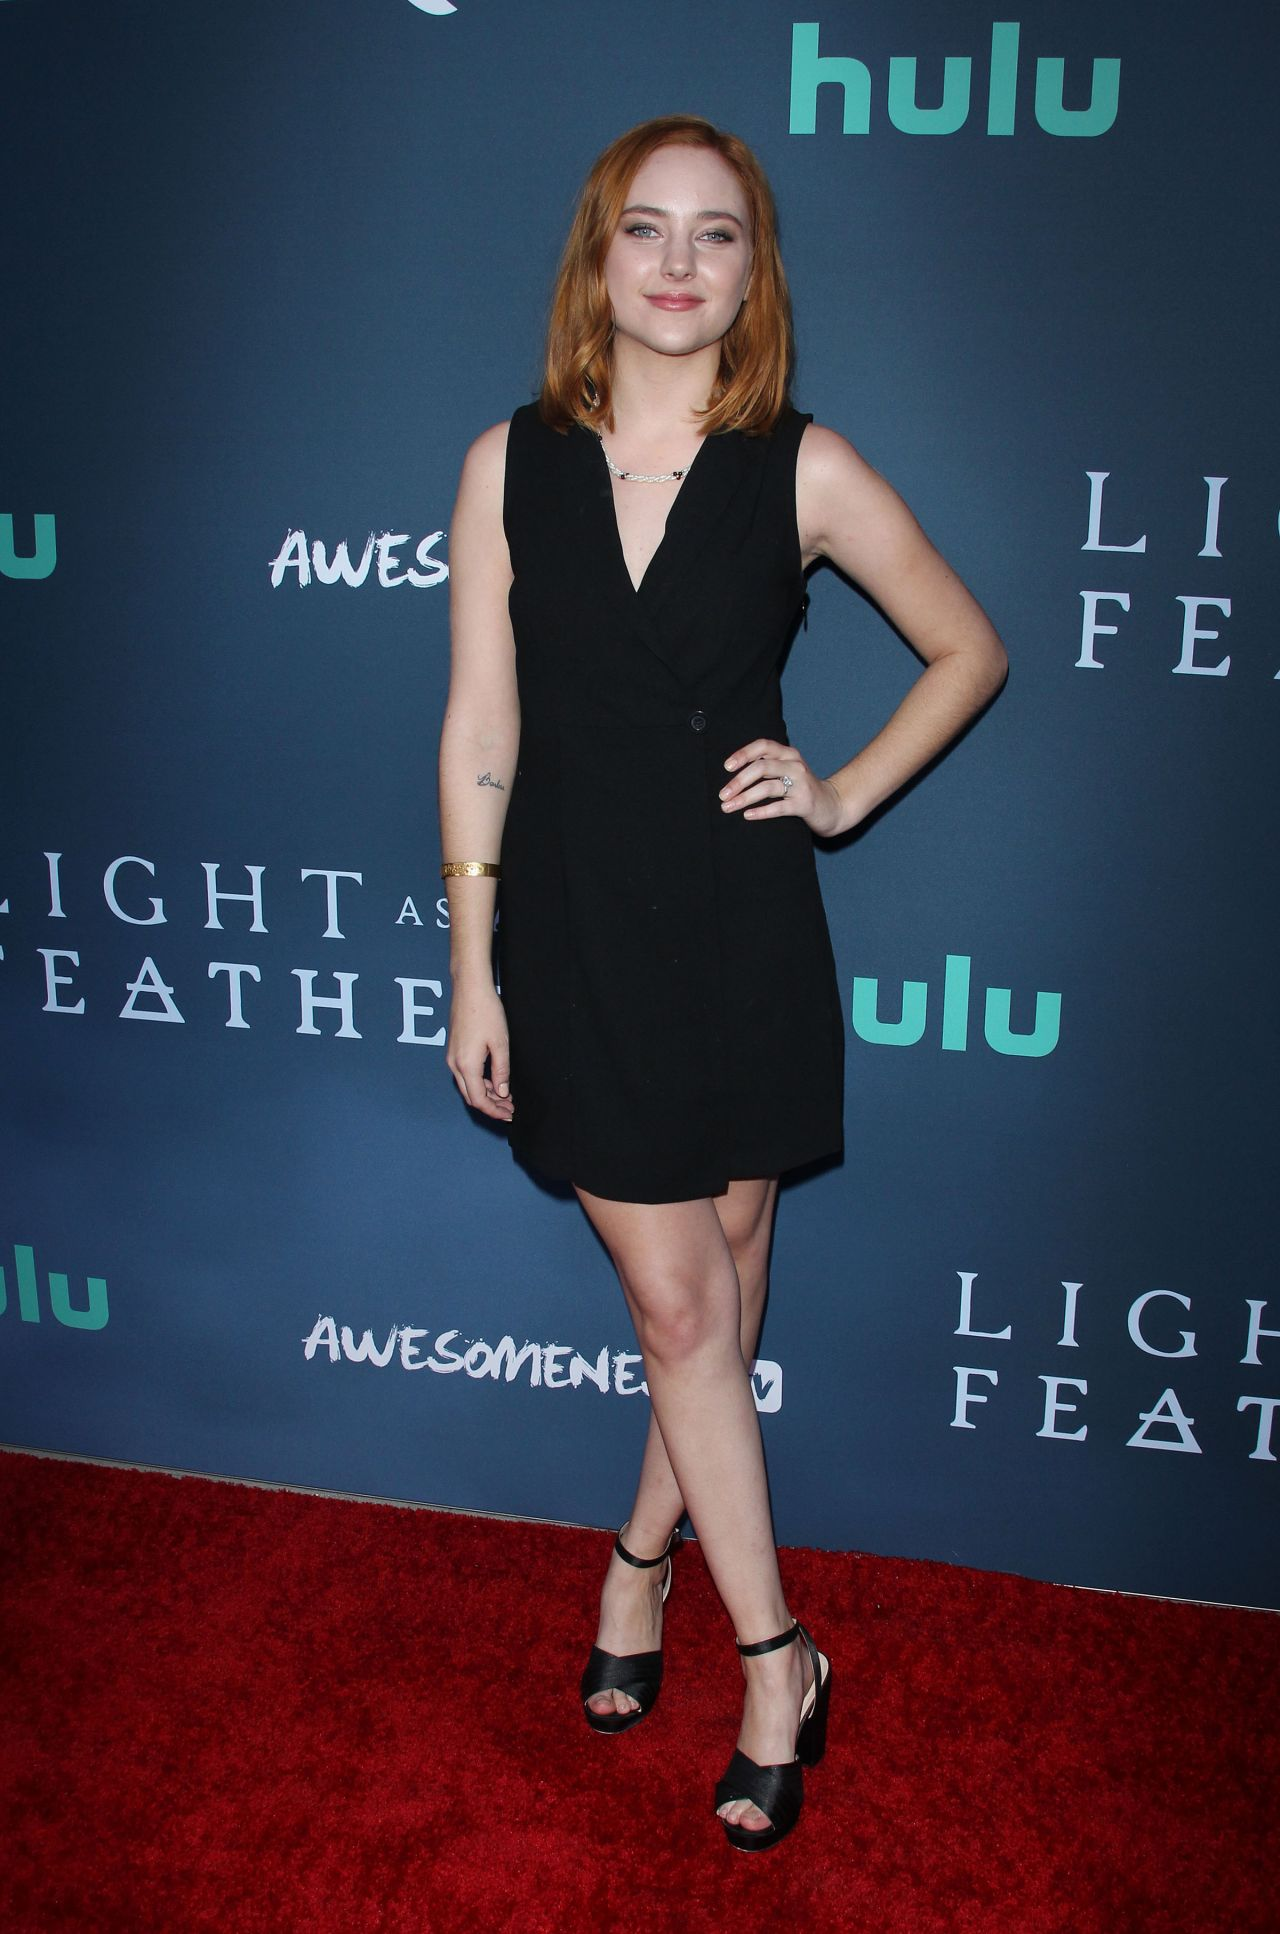 Haley Ramm Quot Light As A Feather Quot In Santa Monica